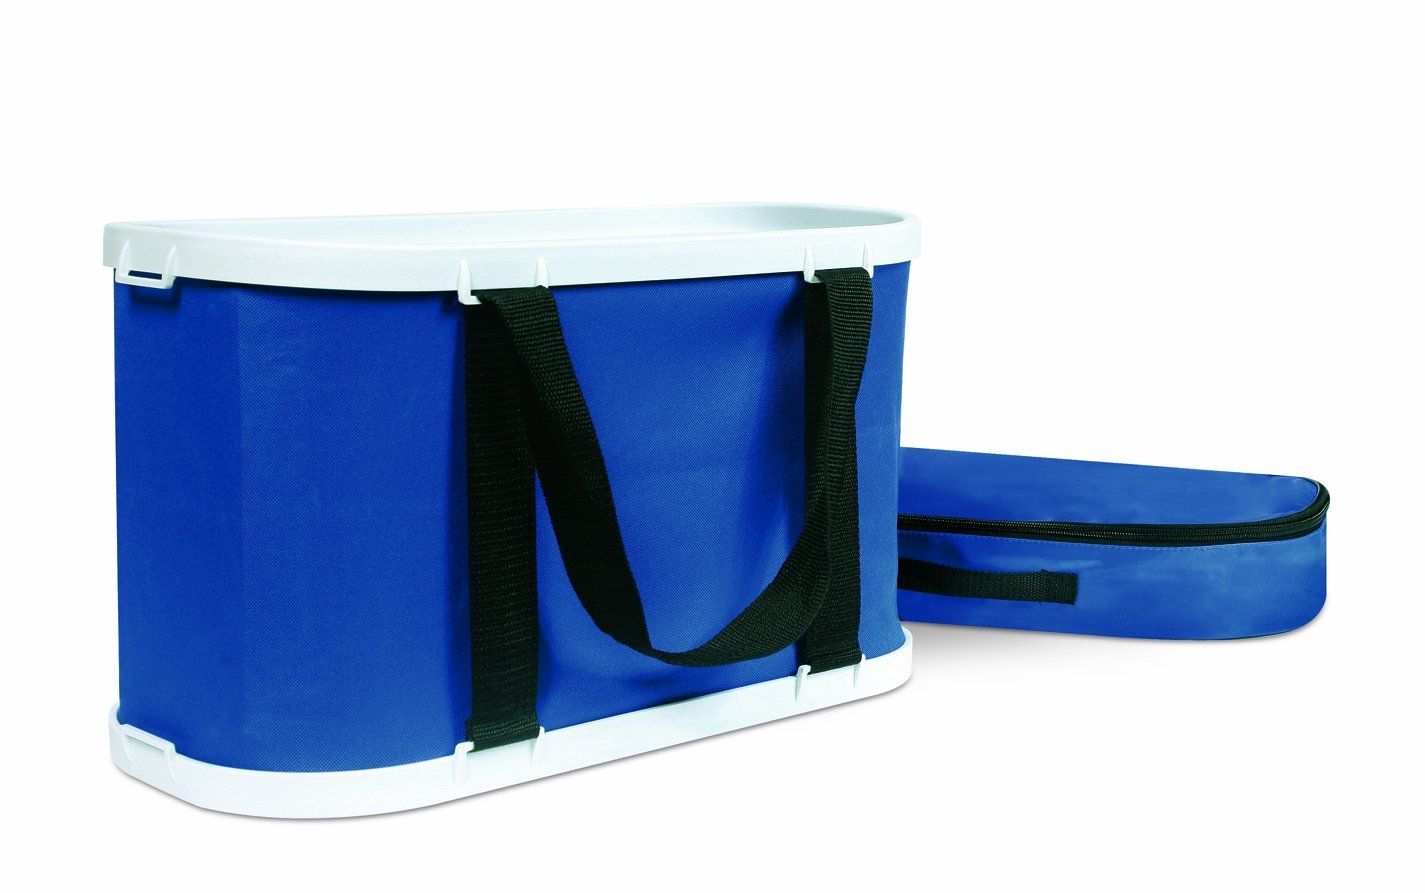 Camco Rectangular Collapsible Bucket